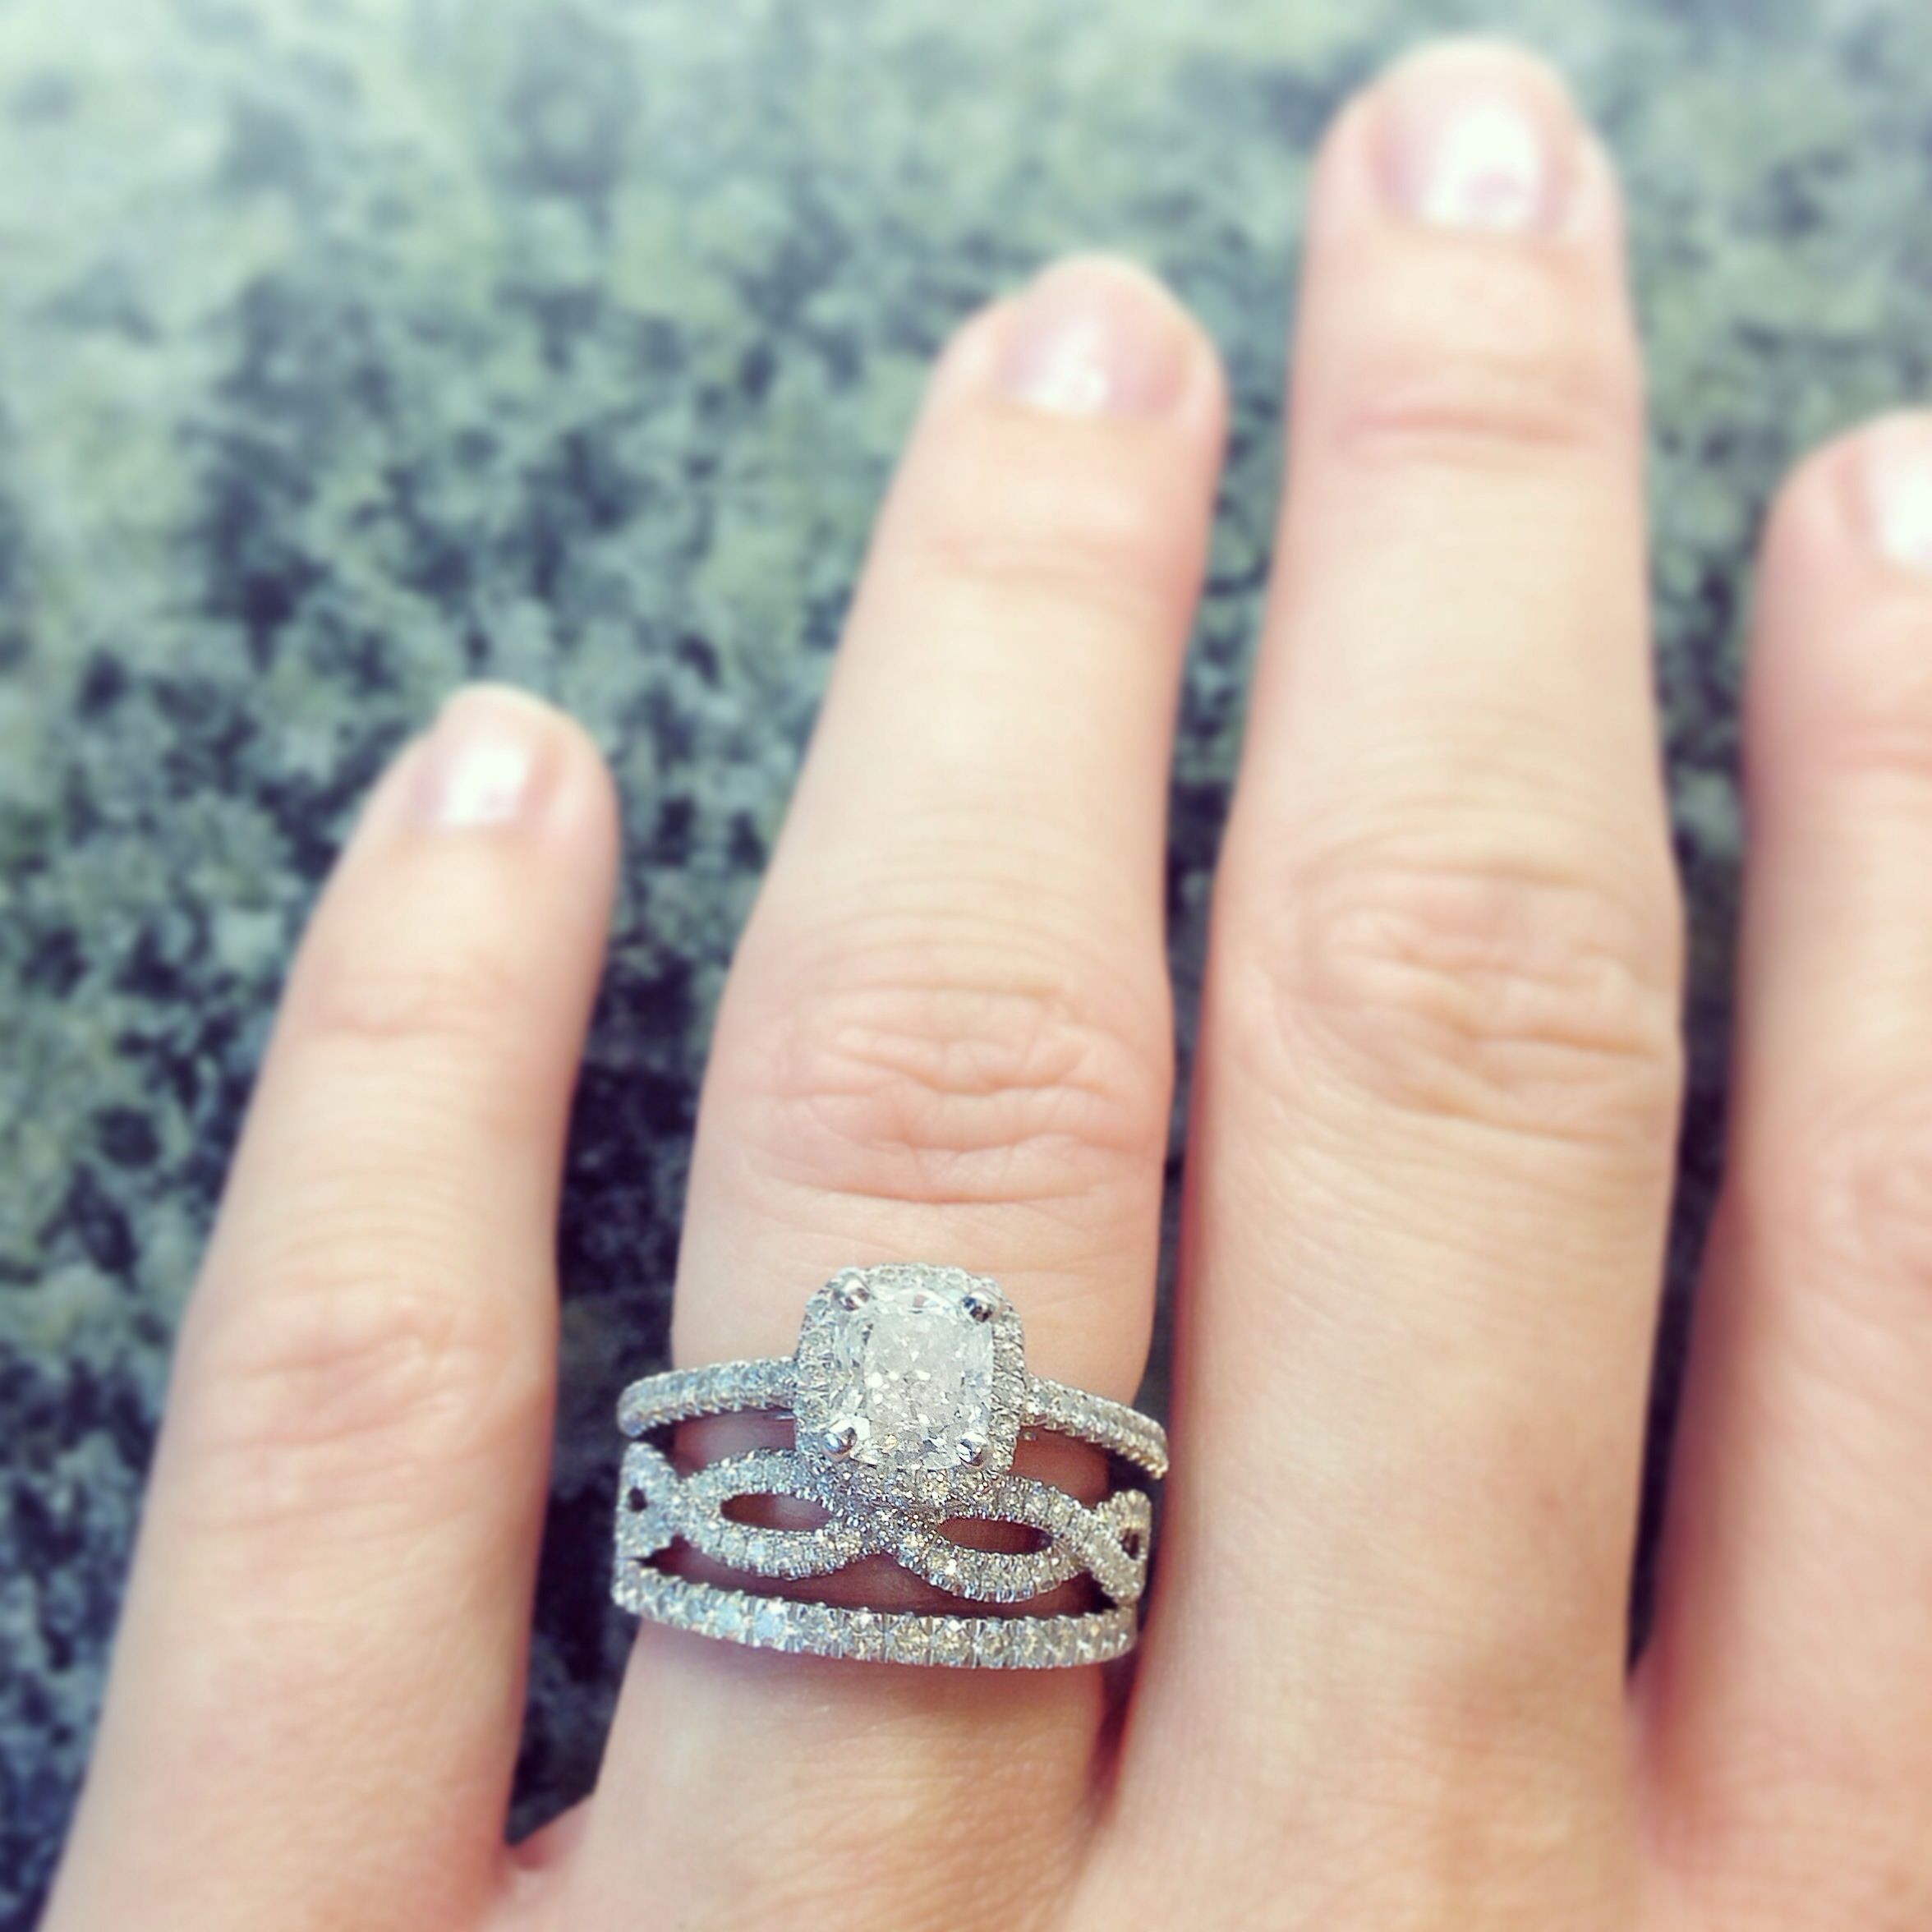 My 1 ct Cushion Cut in a Halo setting Infinity Twist Micropavé